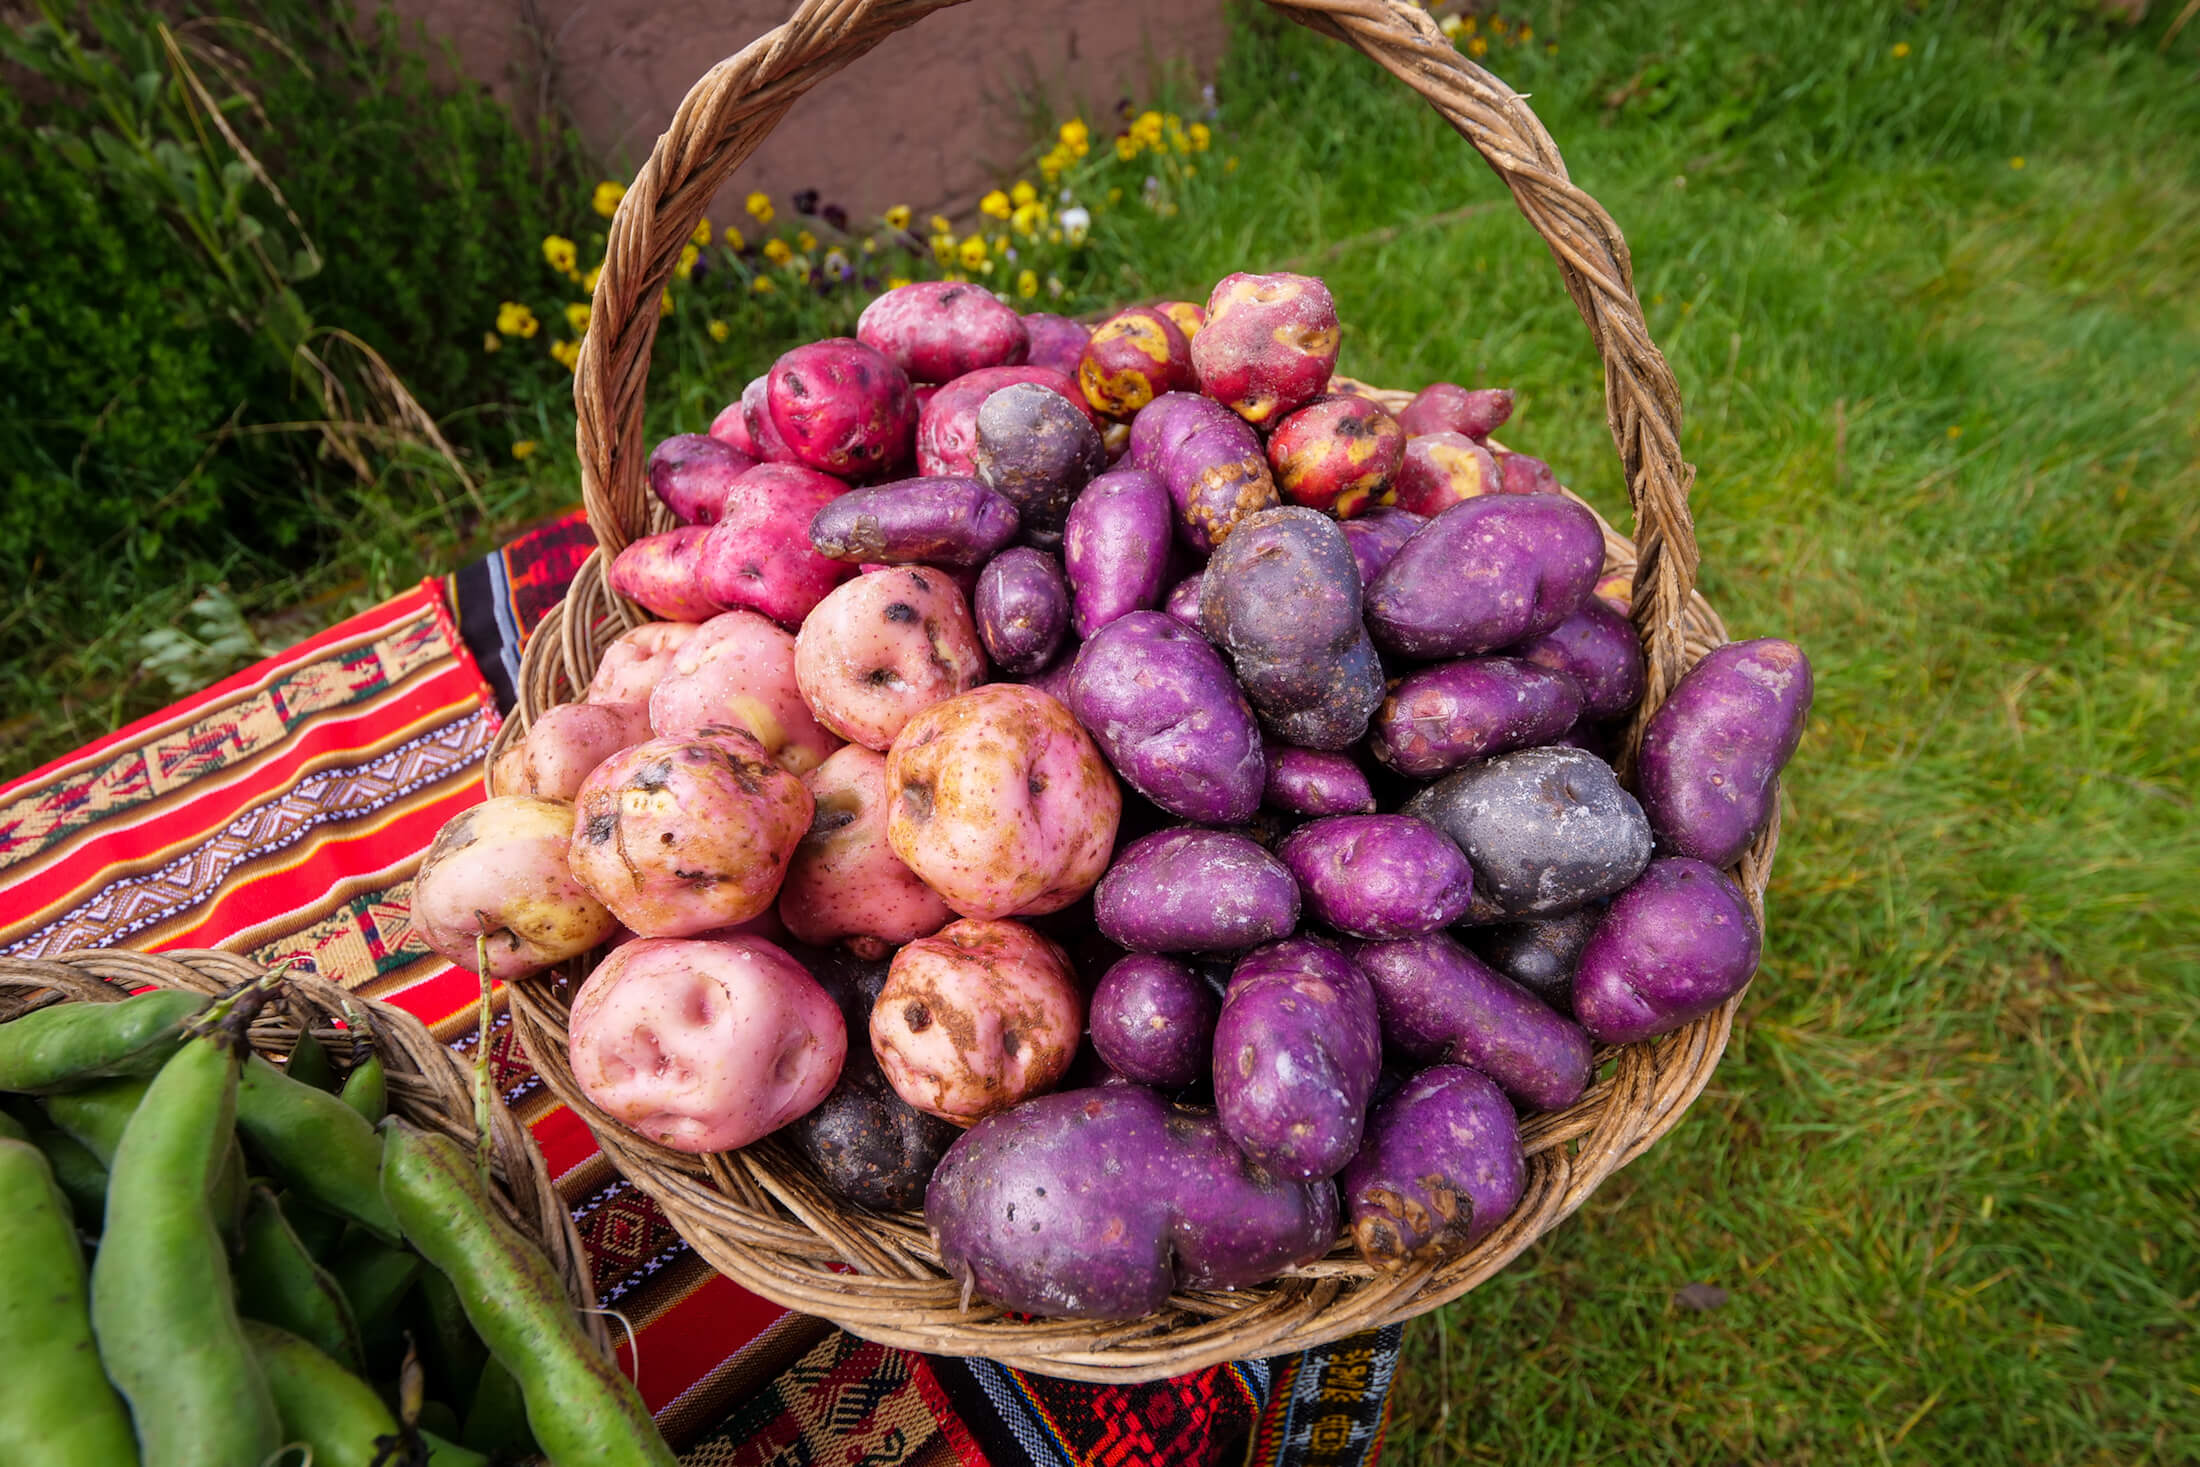 a basket of colorful potatoes, all of which are locally grown